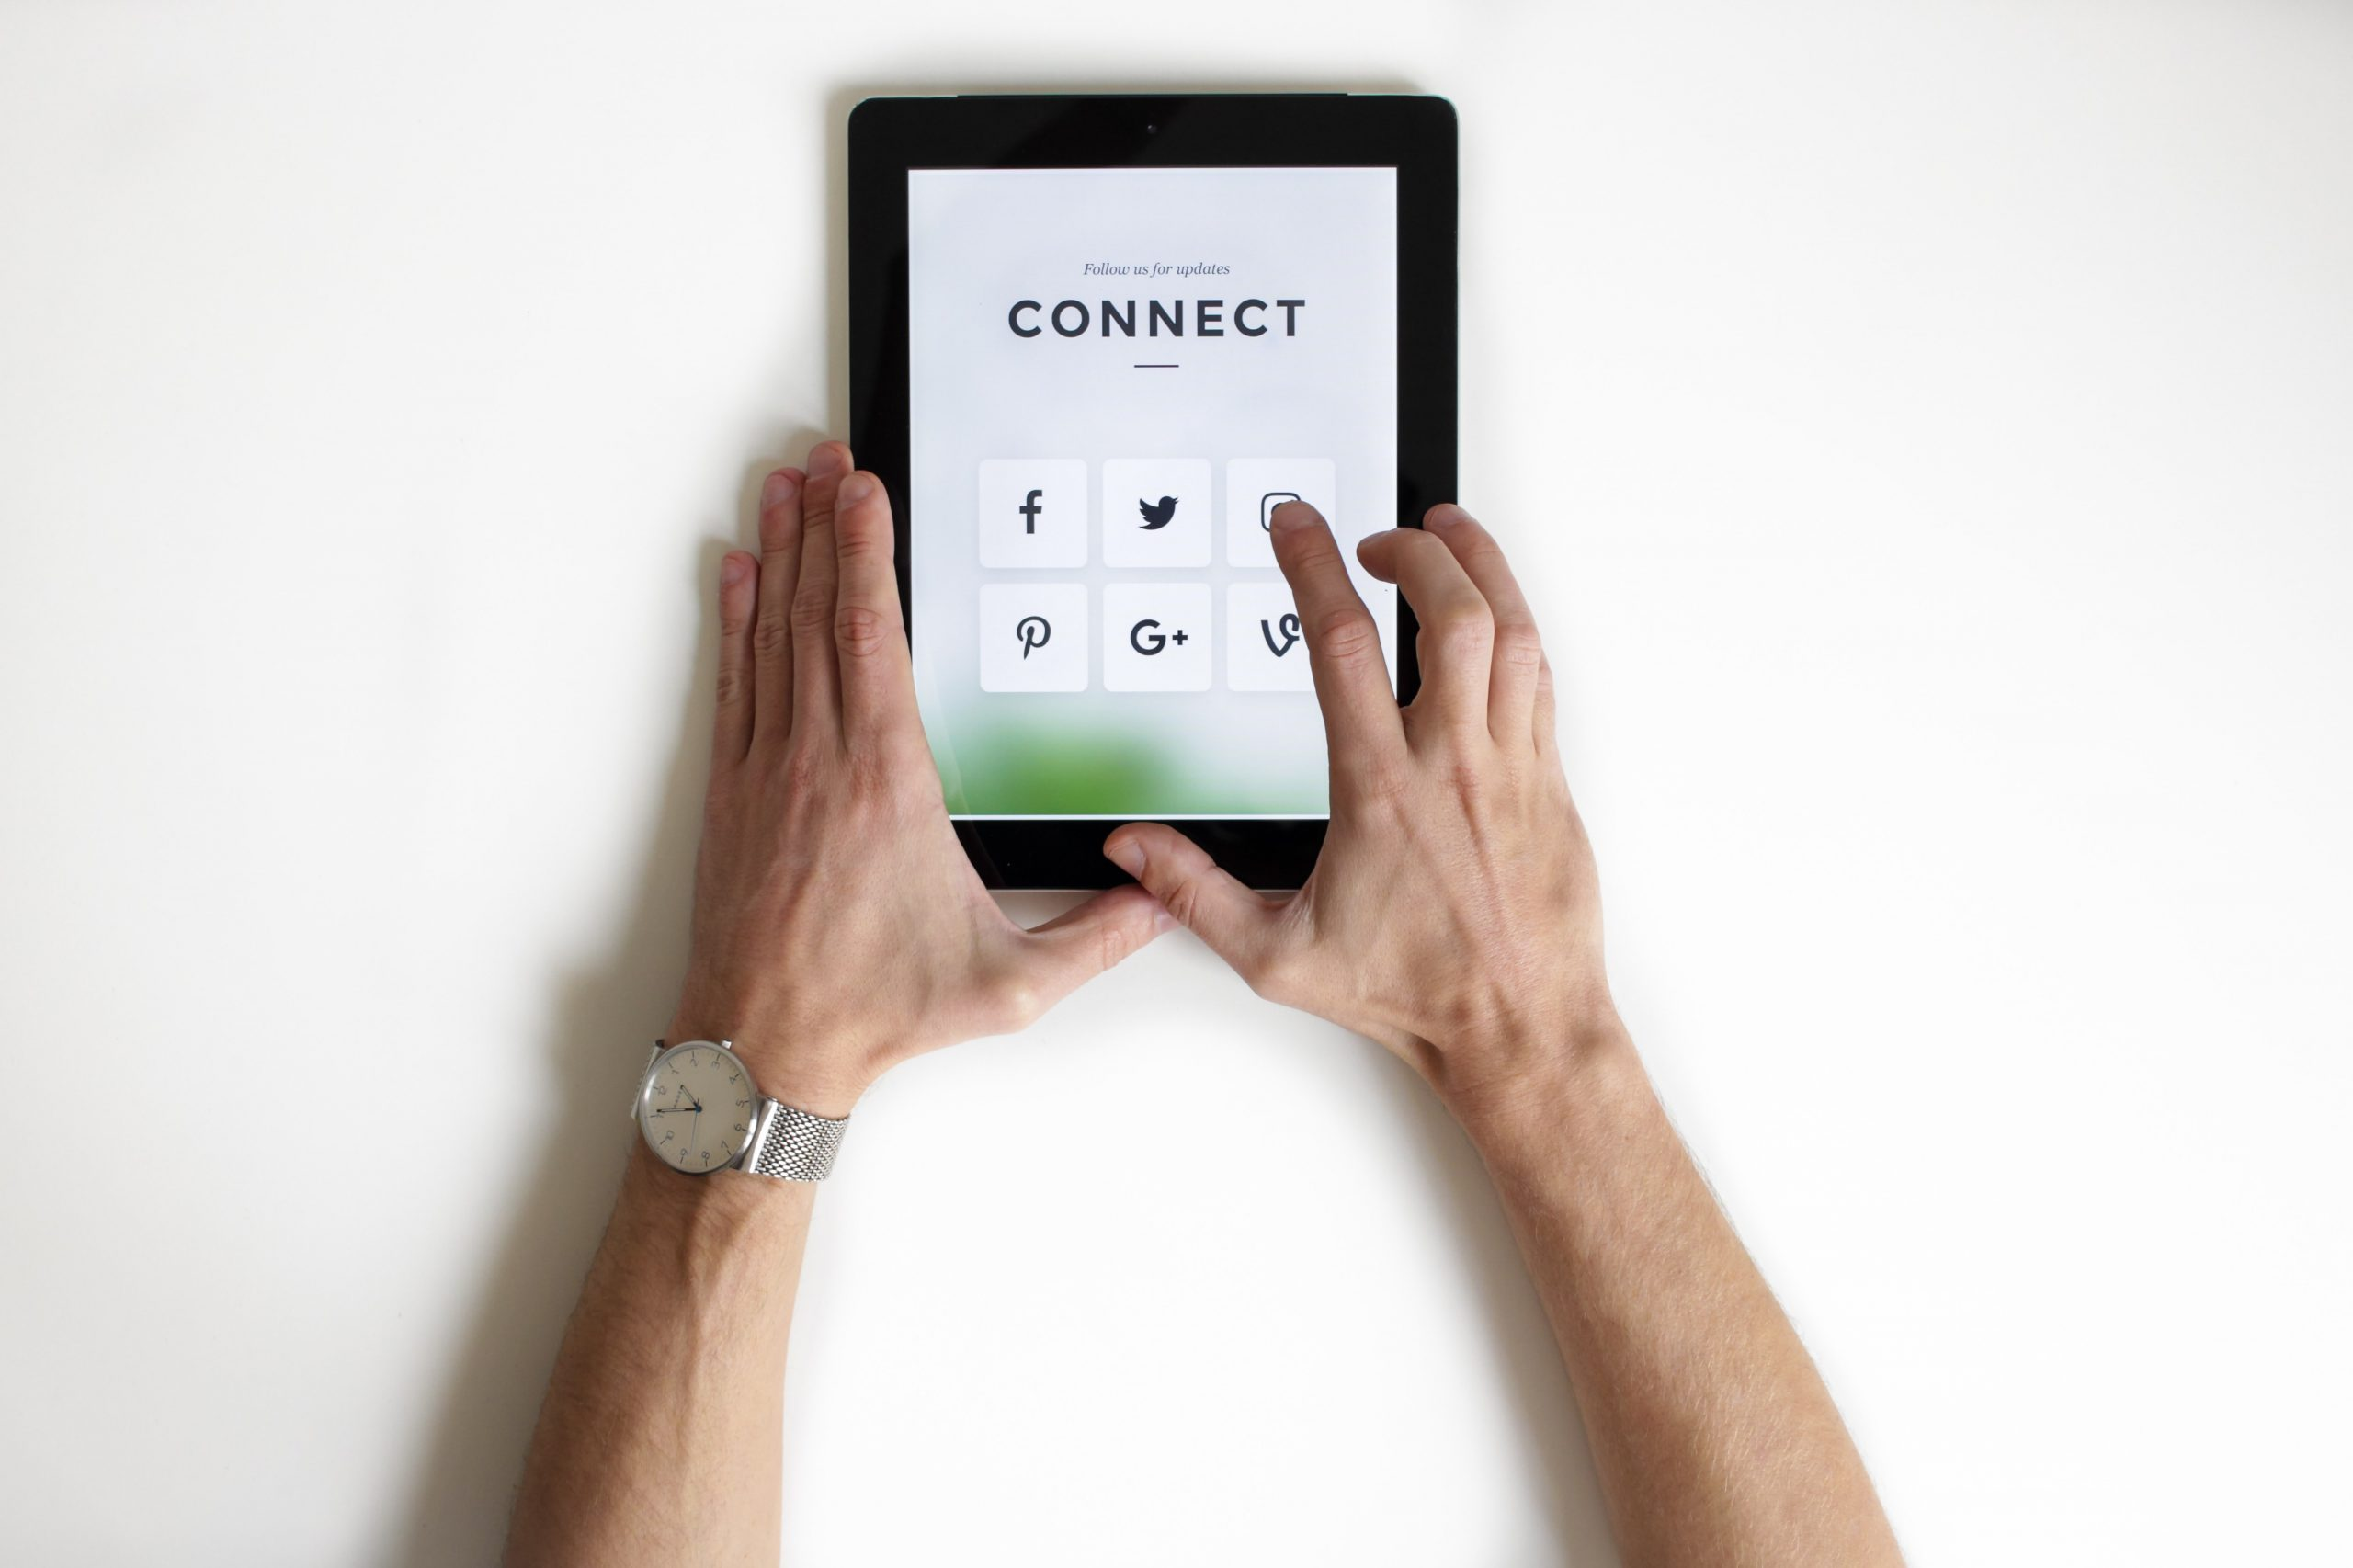 pad/device with social connecting options on-screen, hands interacting